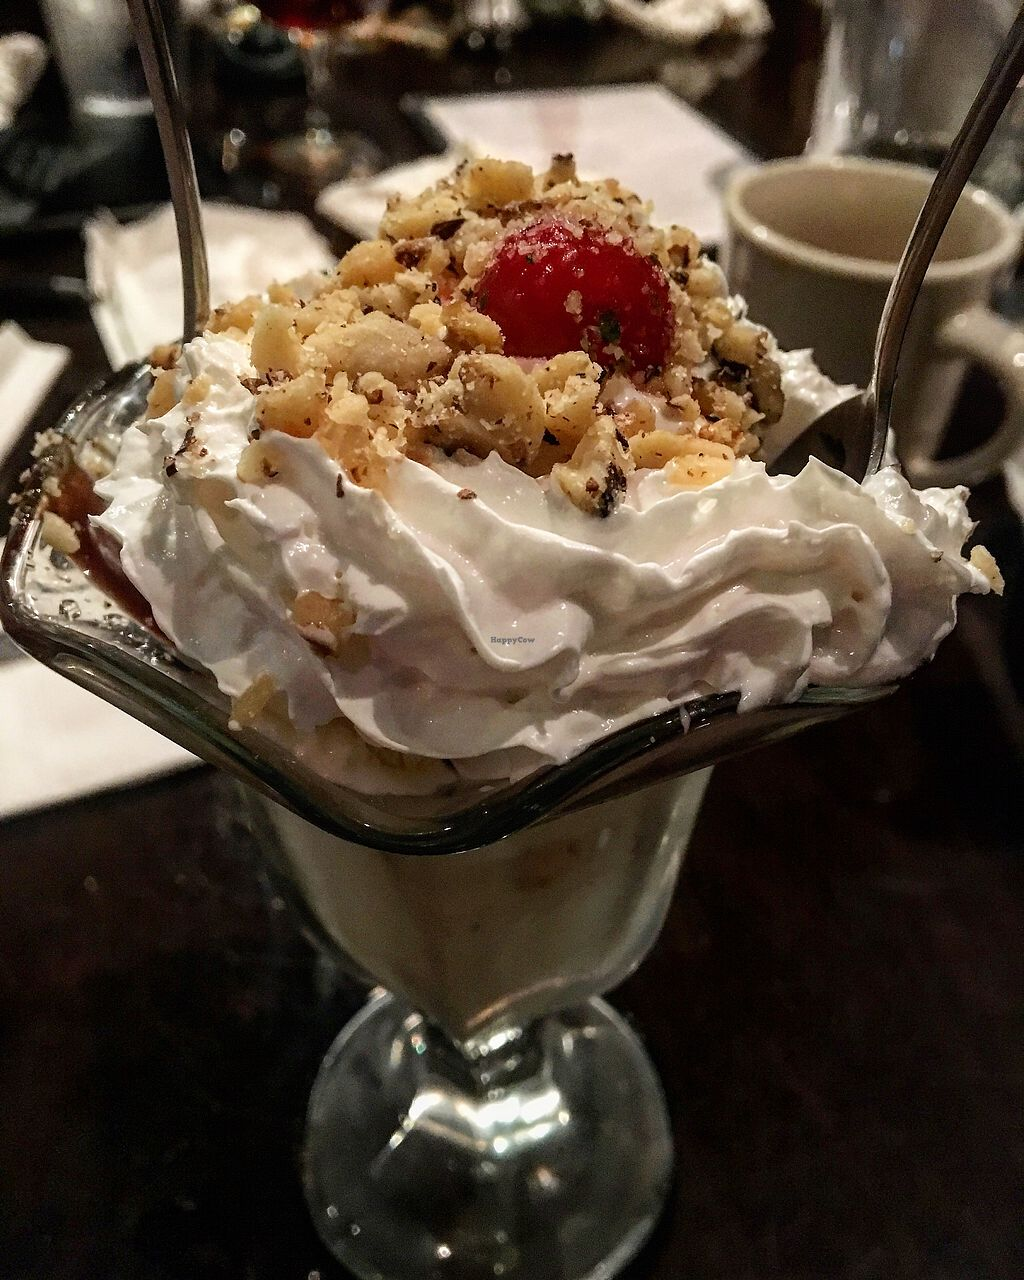 """Photo of Ethos Vegan Kitchen  by <a href=""""/members/profile/LilMsVegan"""">LilMsVegan</a> <br/>Sundae Funday! <br/> February 14, 2018  - <a href='/contact/abuse/image/12683/359235'>Report</a>"""